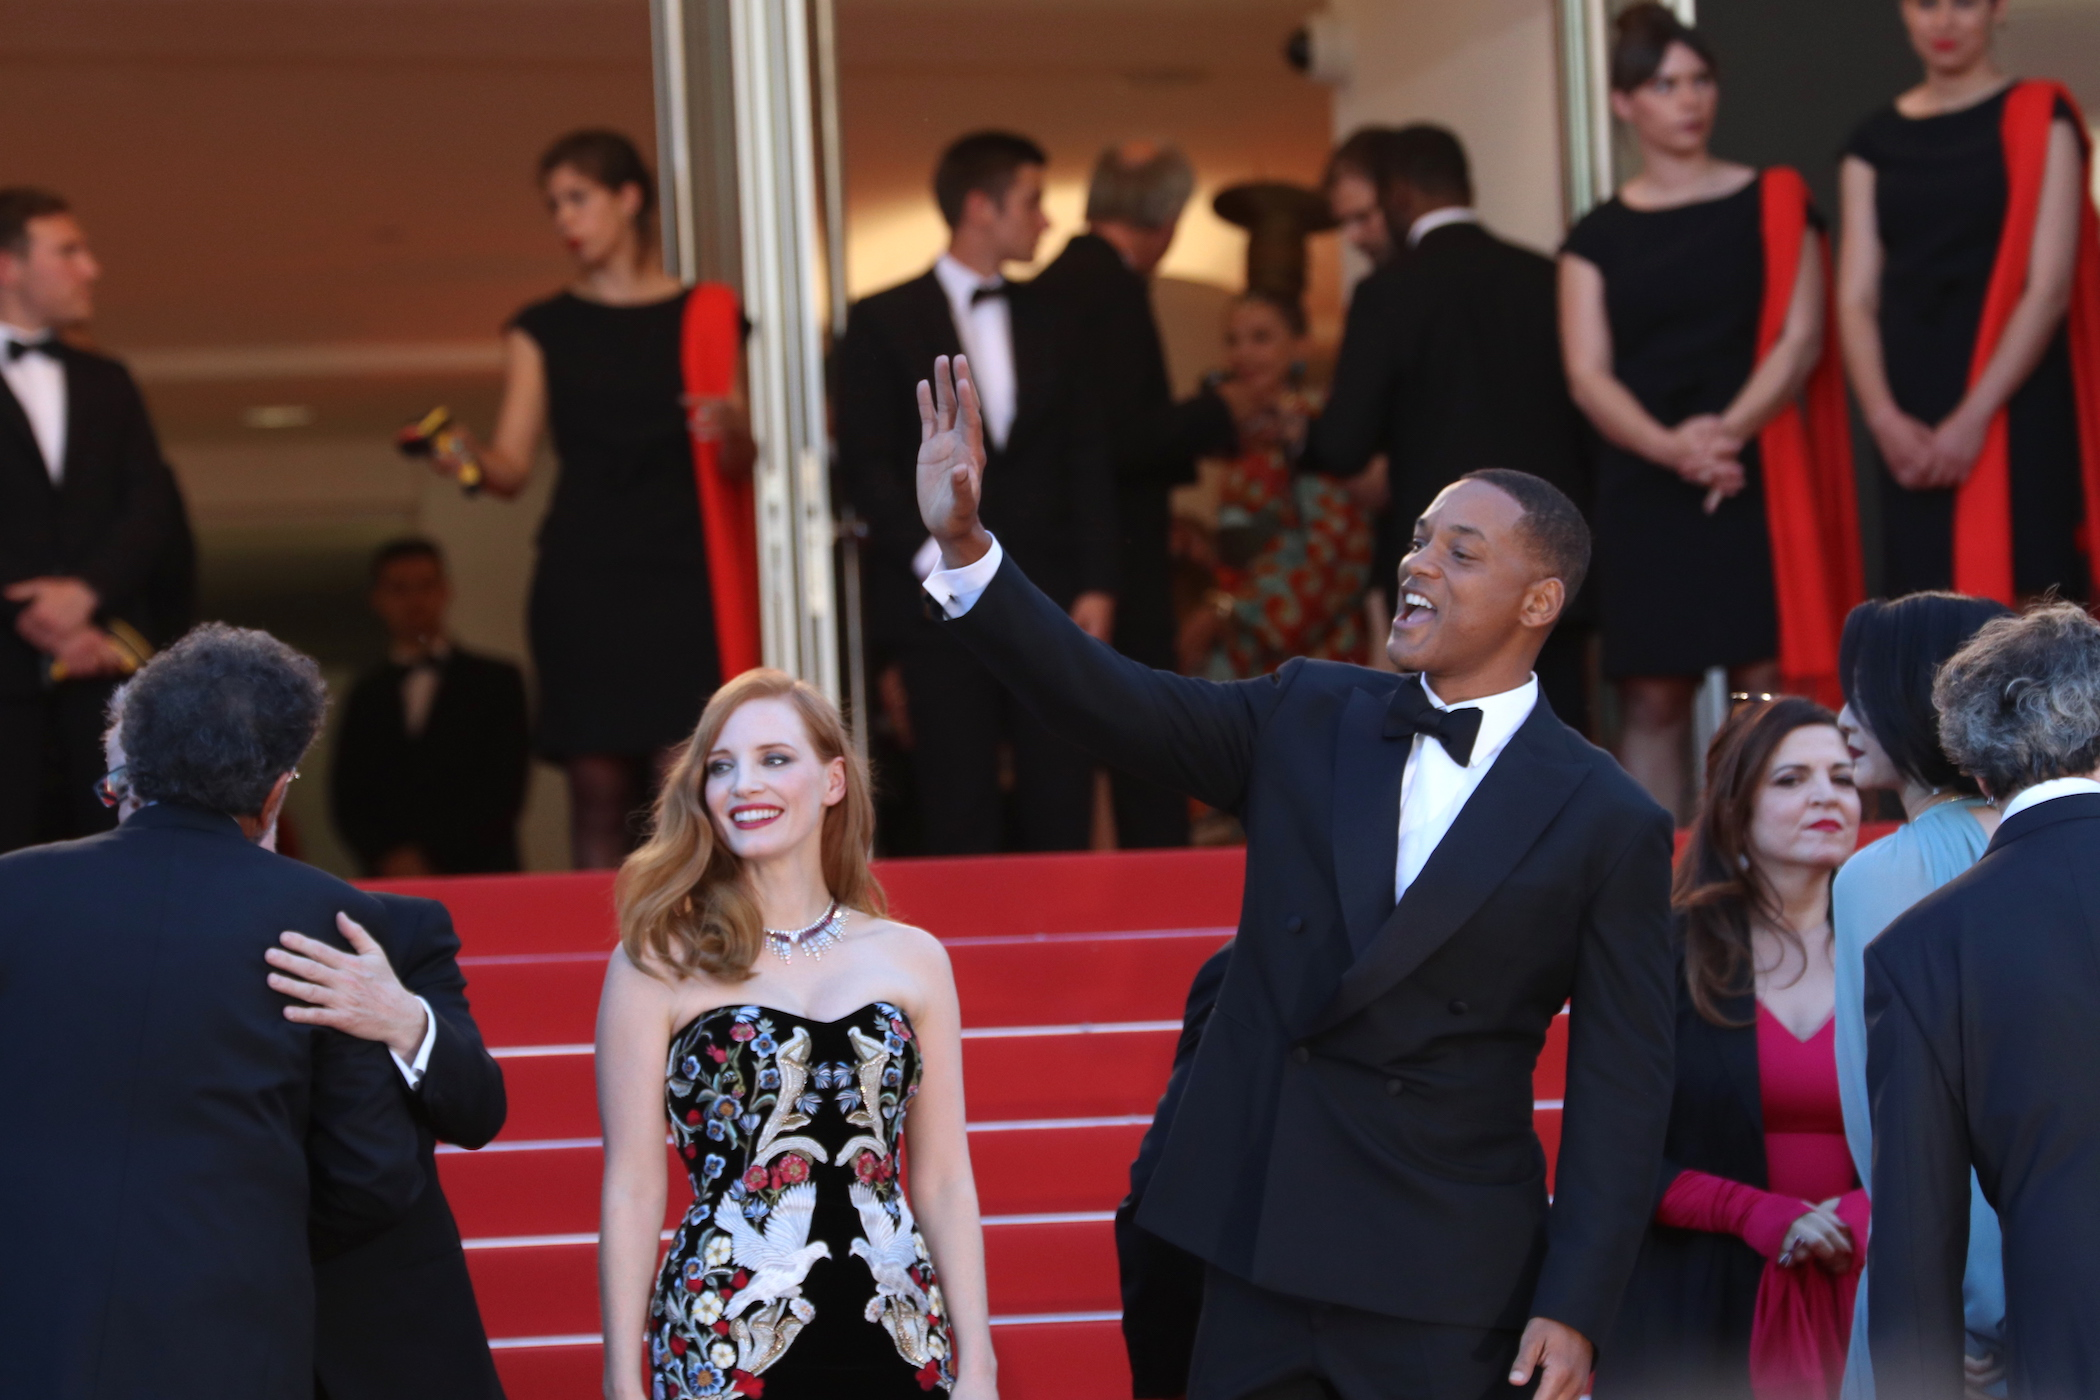 Cannes 2017: Will Smith e Jessica Chastain salutano i fan sul red carpet inaugurale